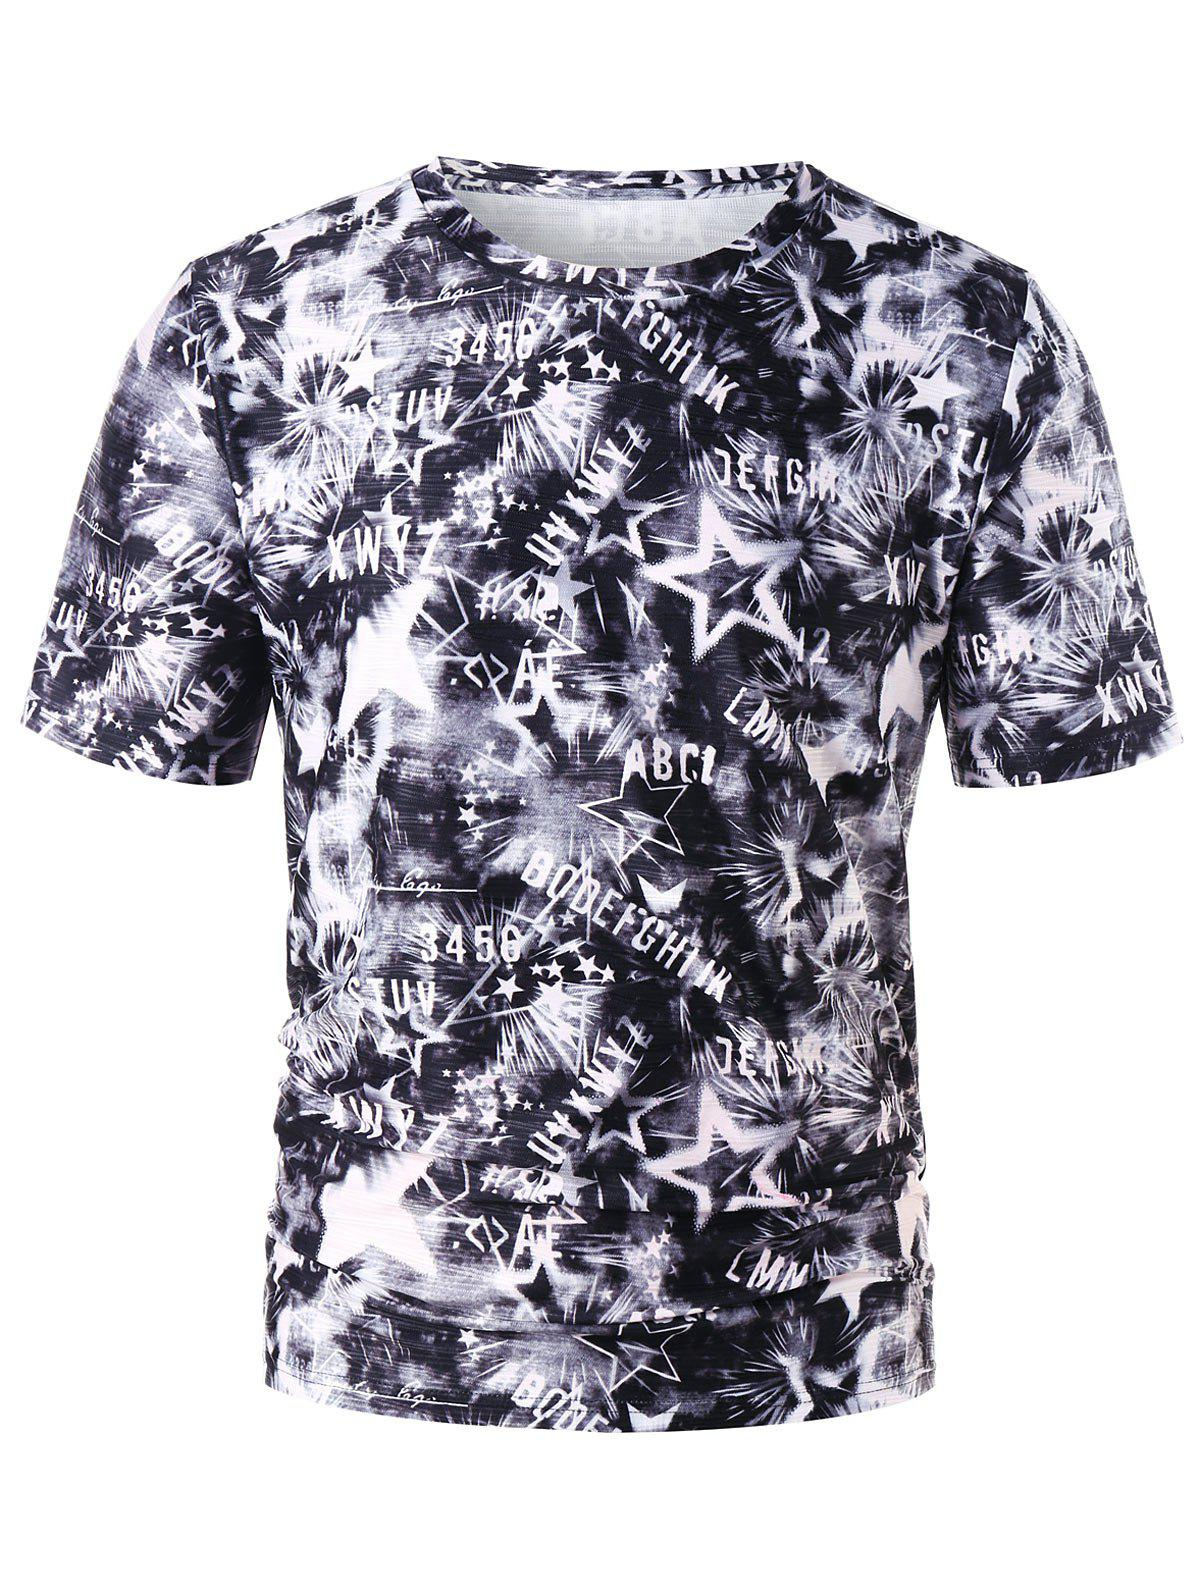 Tie Dye Printed Graphic Tee embroidered tape tie neck cutout graphic tee